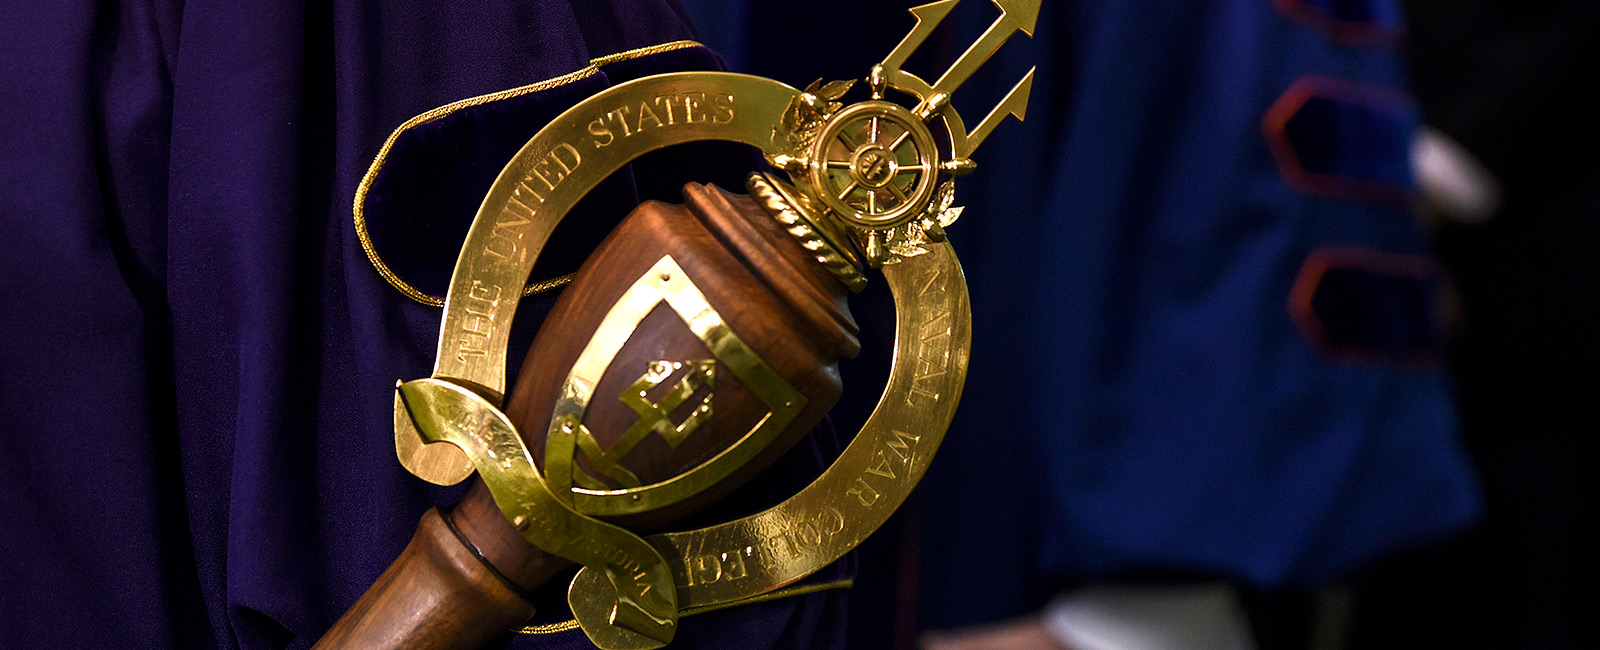 The Mace is a symbol of U.S. Naval War College as an academic institution.